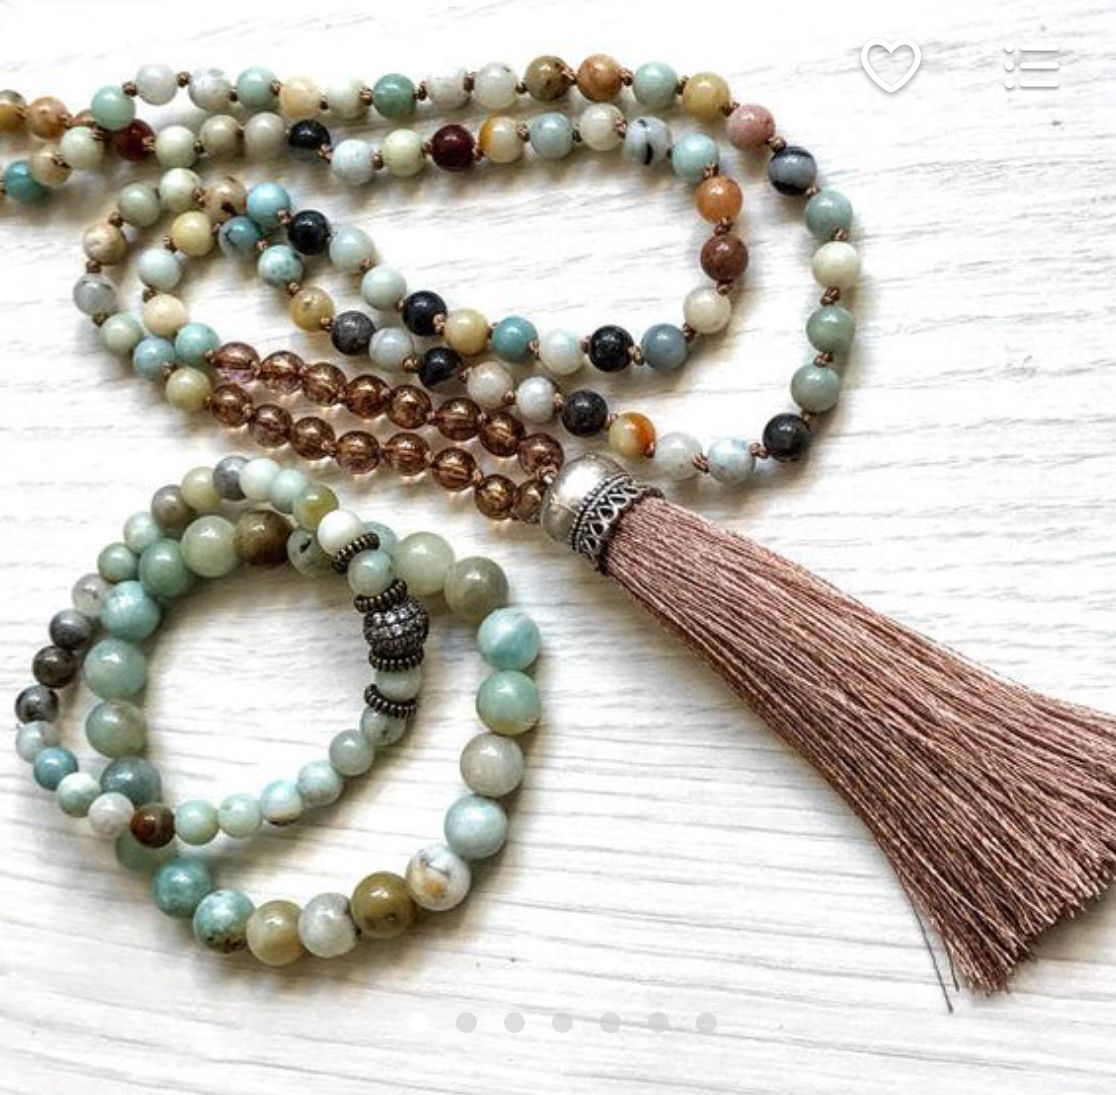 Ooak sets necklace and bracelets mala sets gift for her long